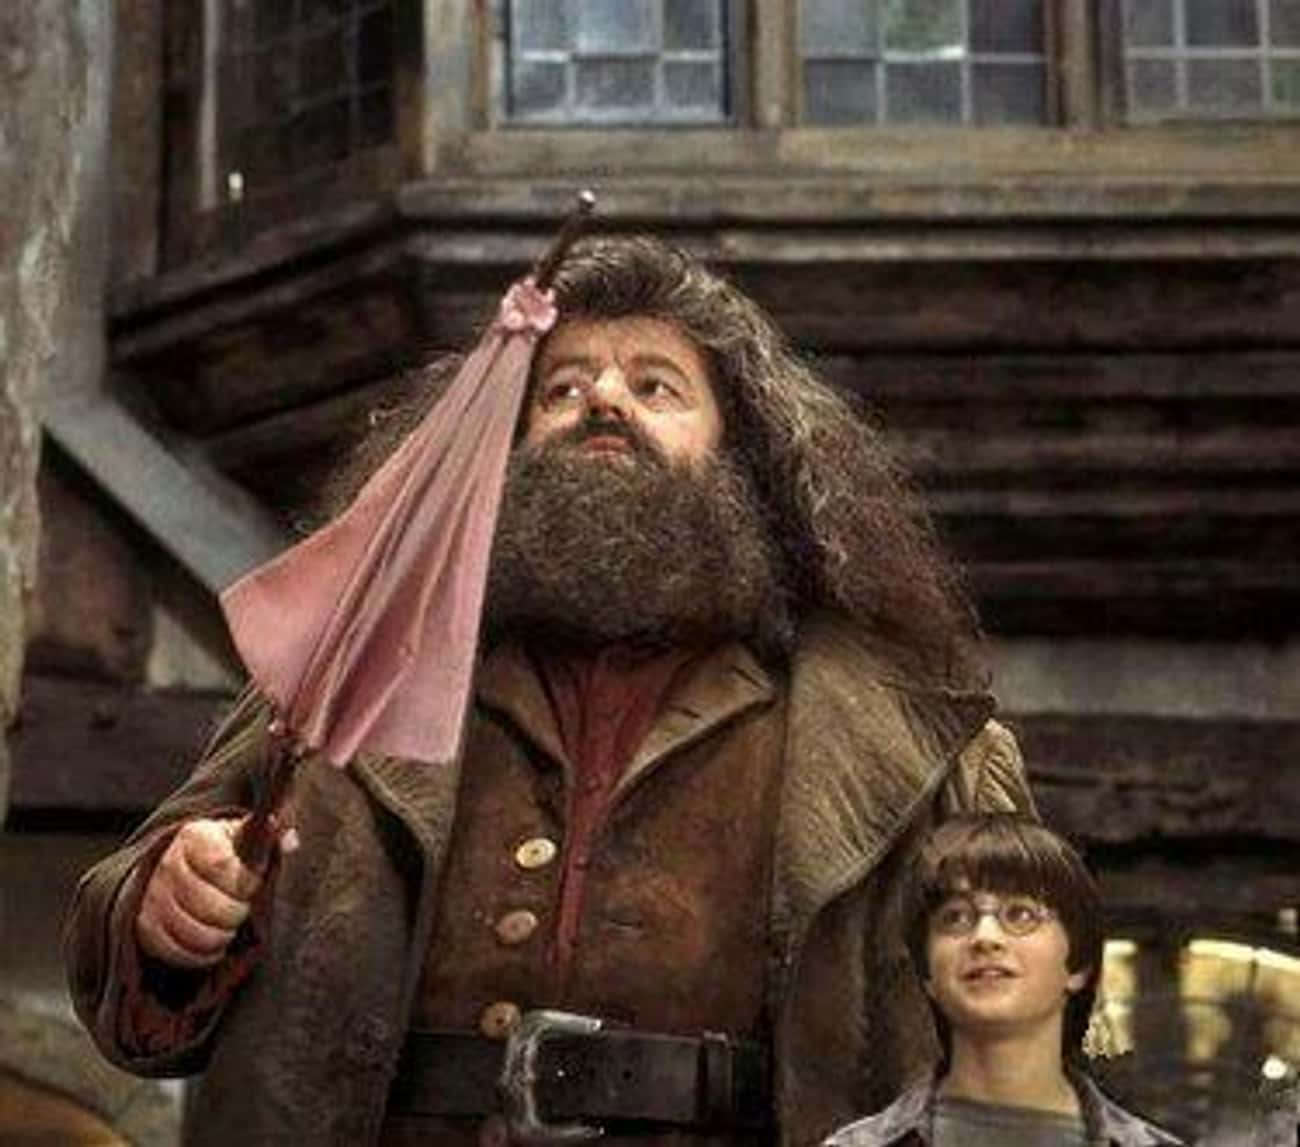 Dumbledore Repaired Hagrid's Wand And Transfigured It Into An Umbrella To Hide It